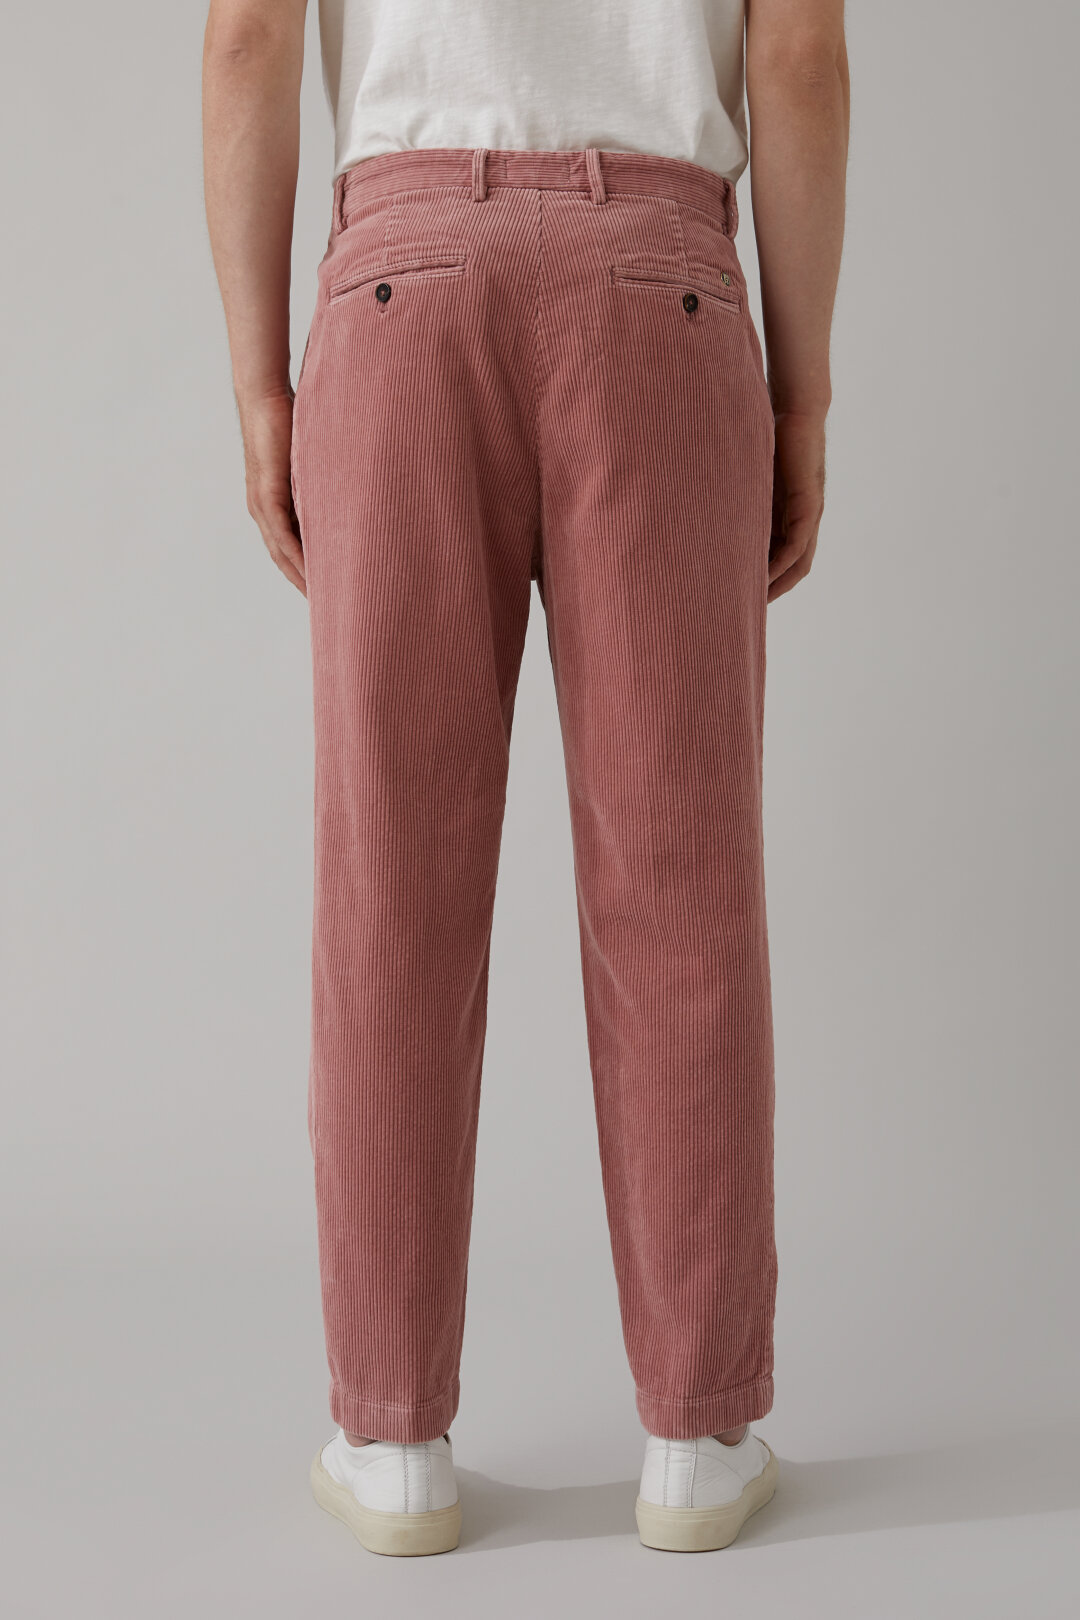 Baron Wide Corduroy Pants